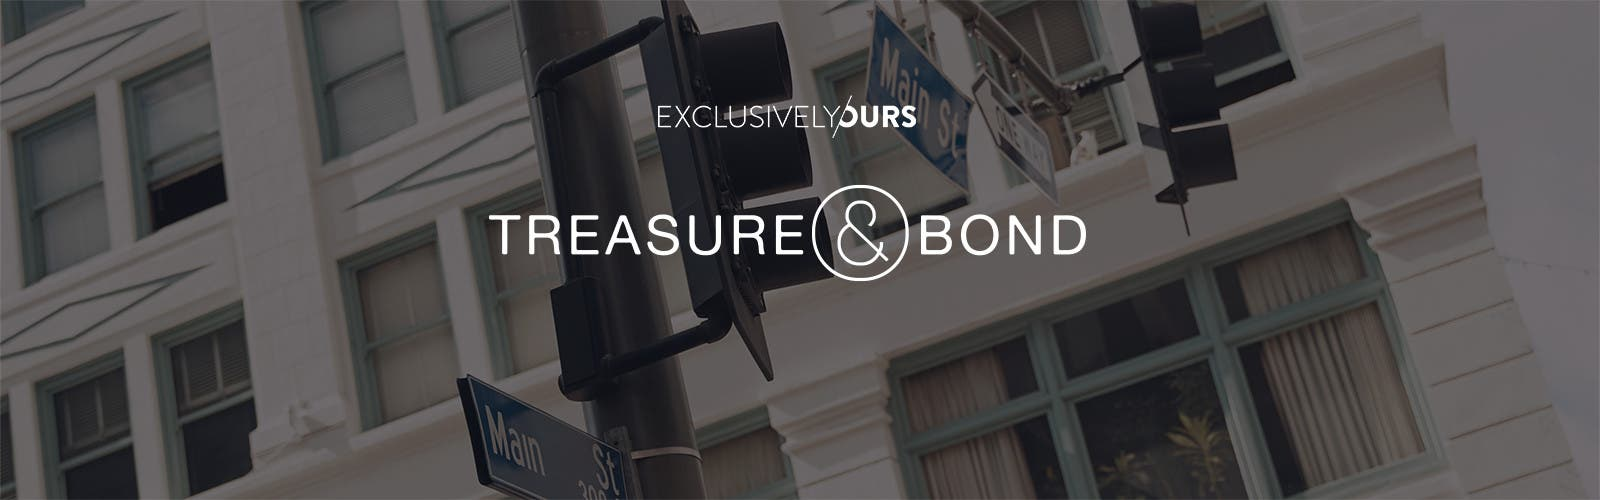 Exclusively ours: Treasure & Bond.